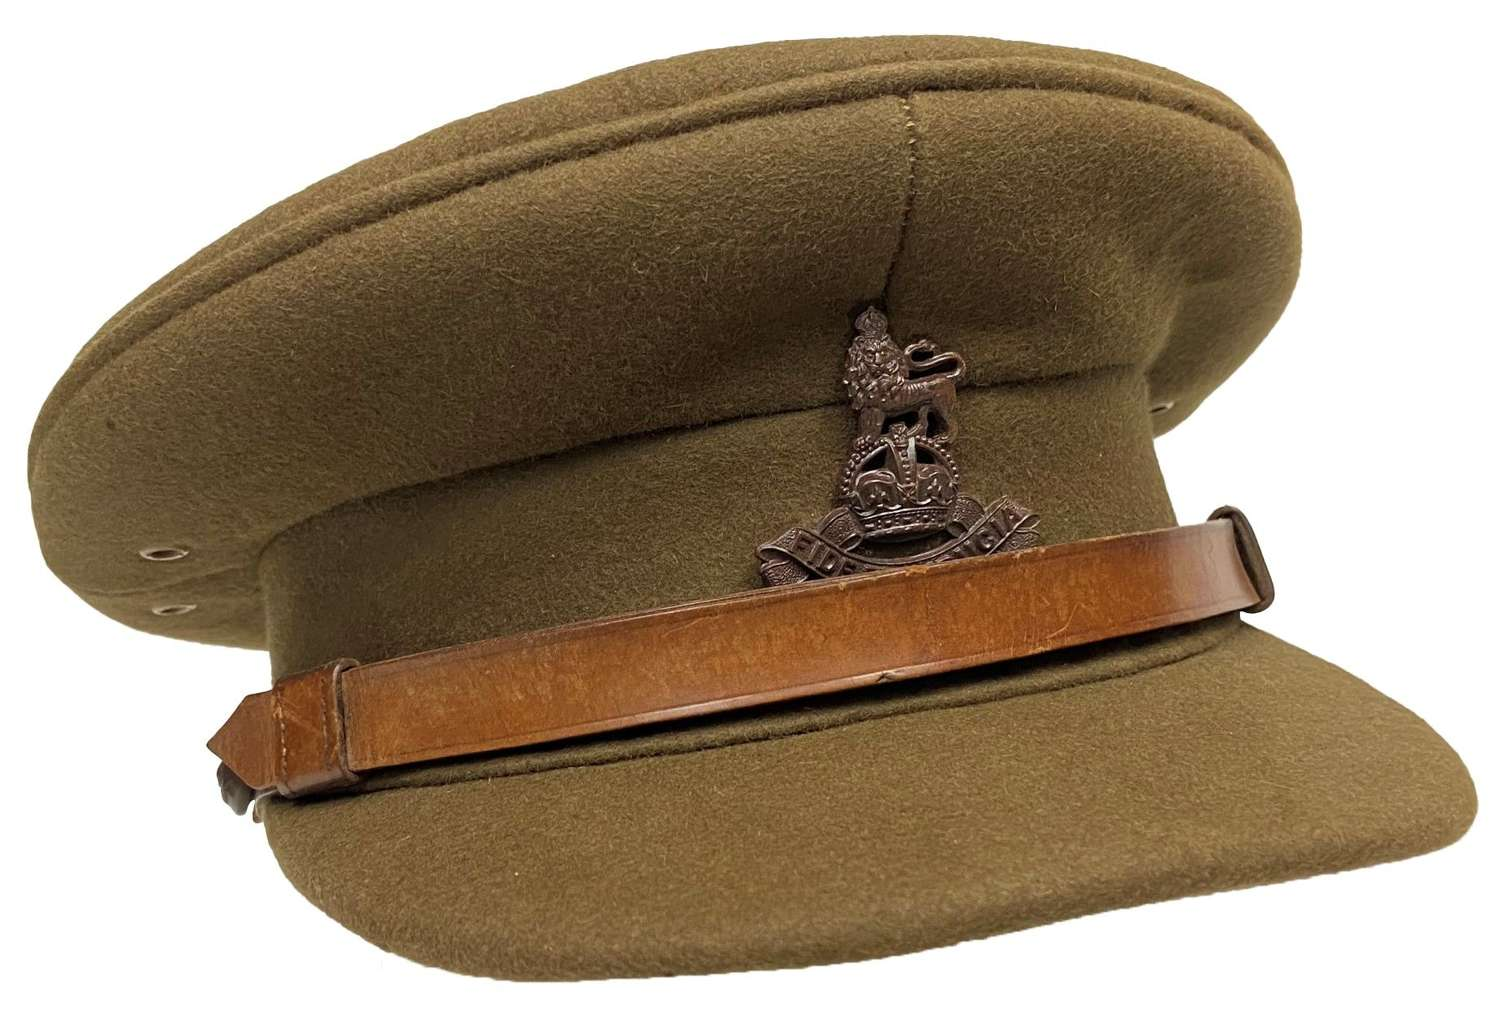 Original WW2 Royal Army Pay Corps Officers Peaked Cap by 'Gieves'